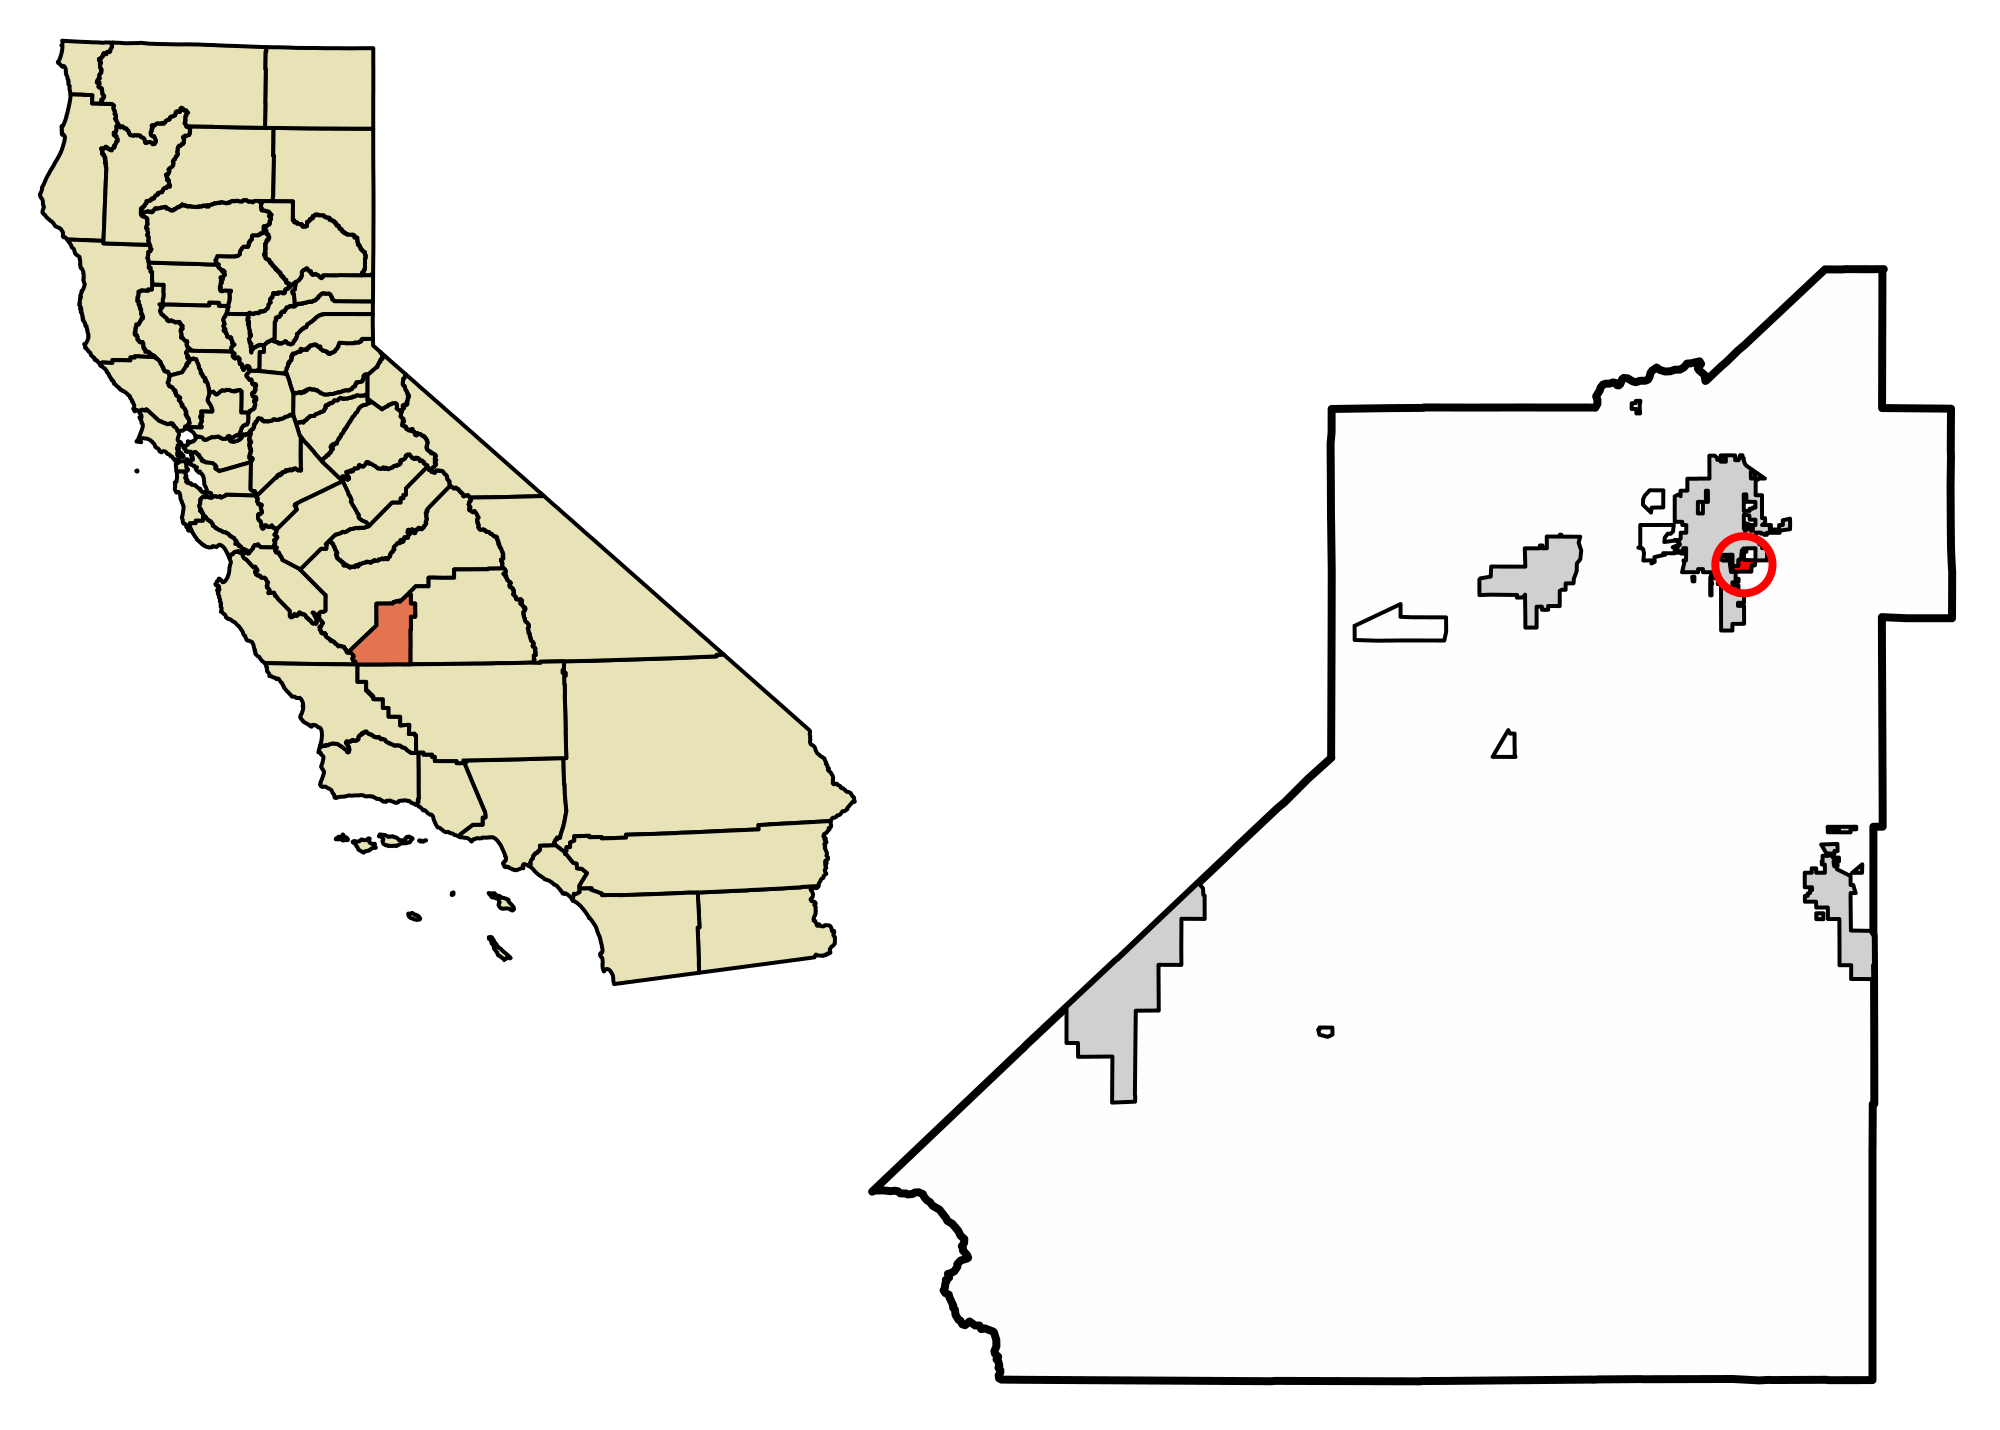 California svg home. File kings county incorporated